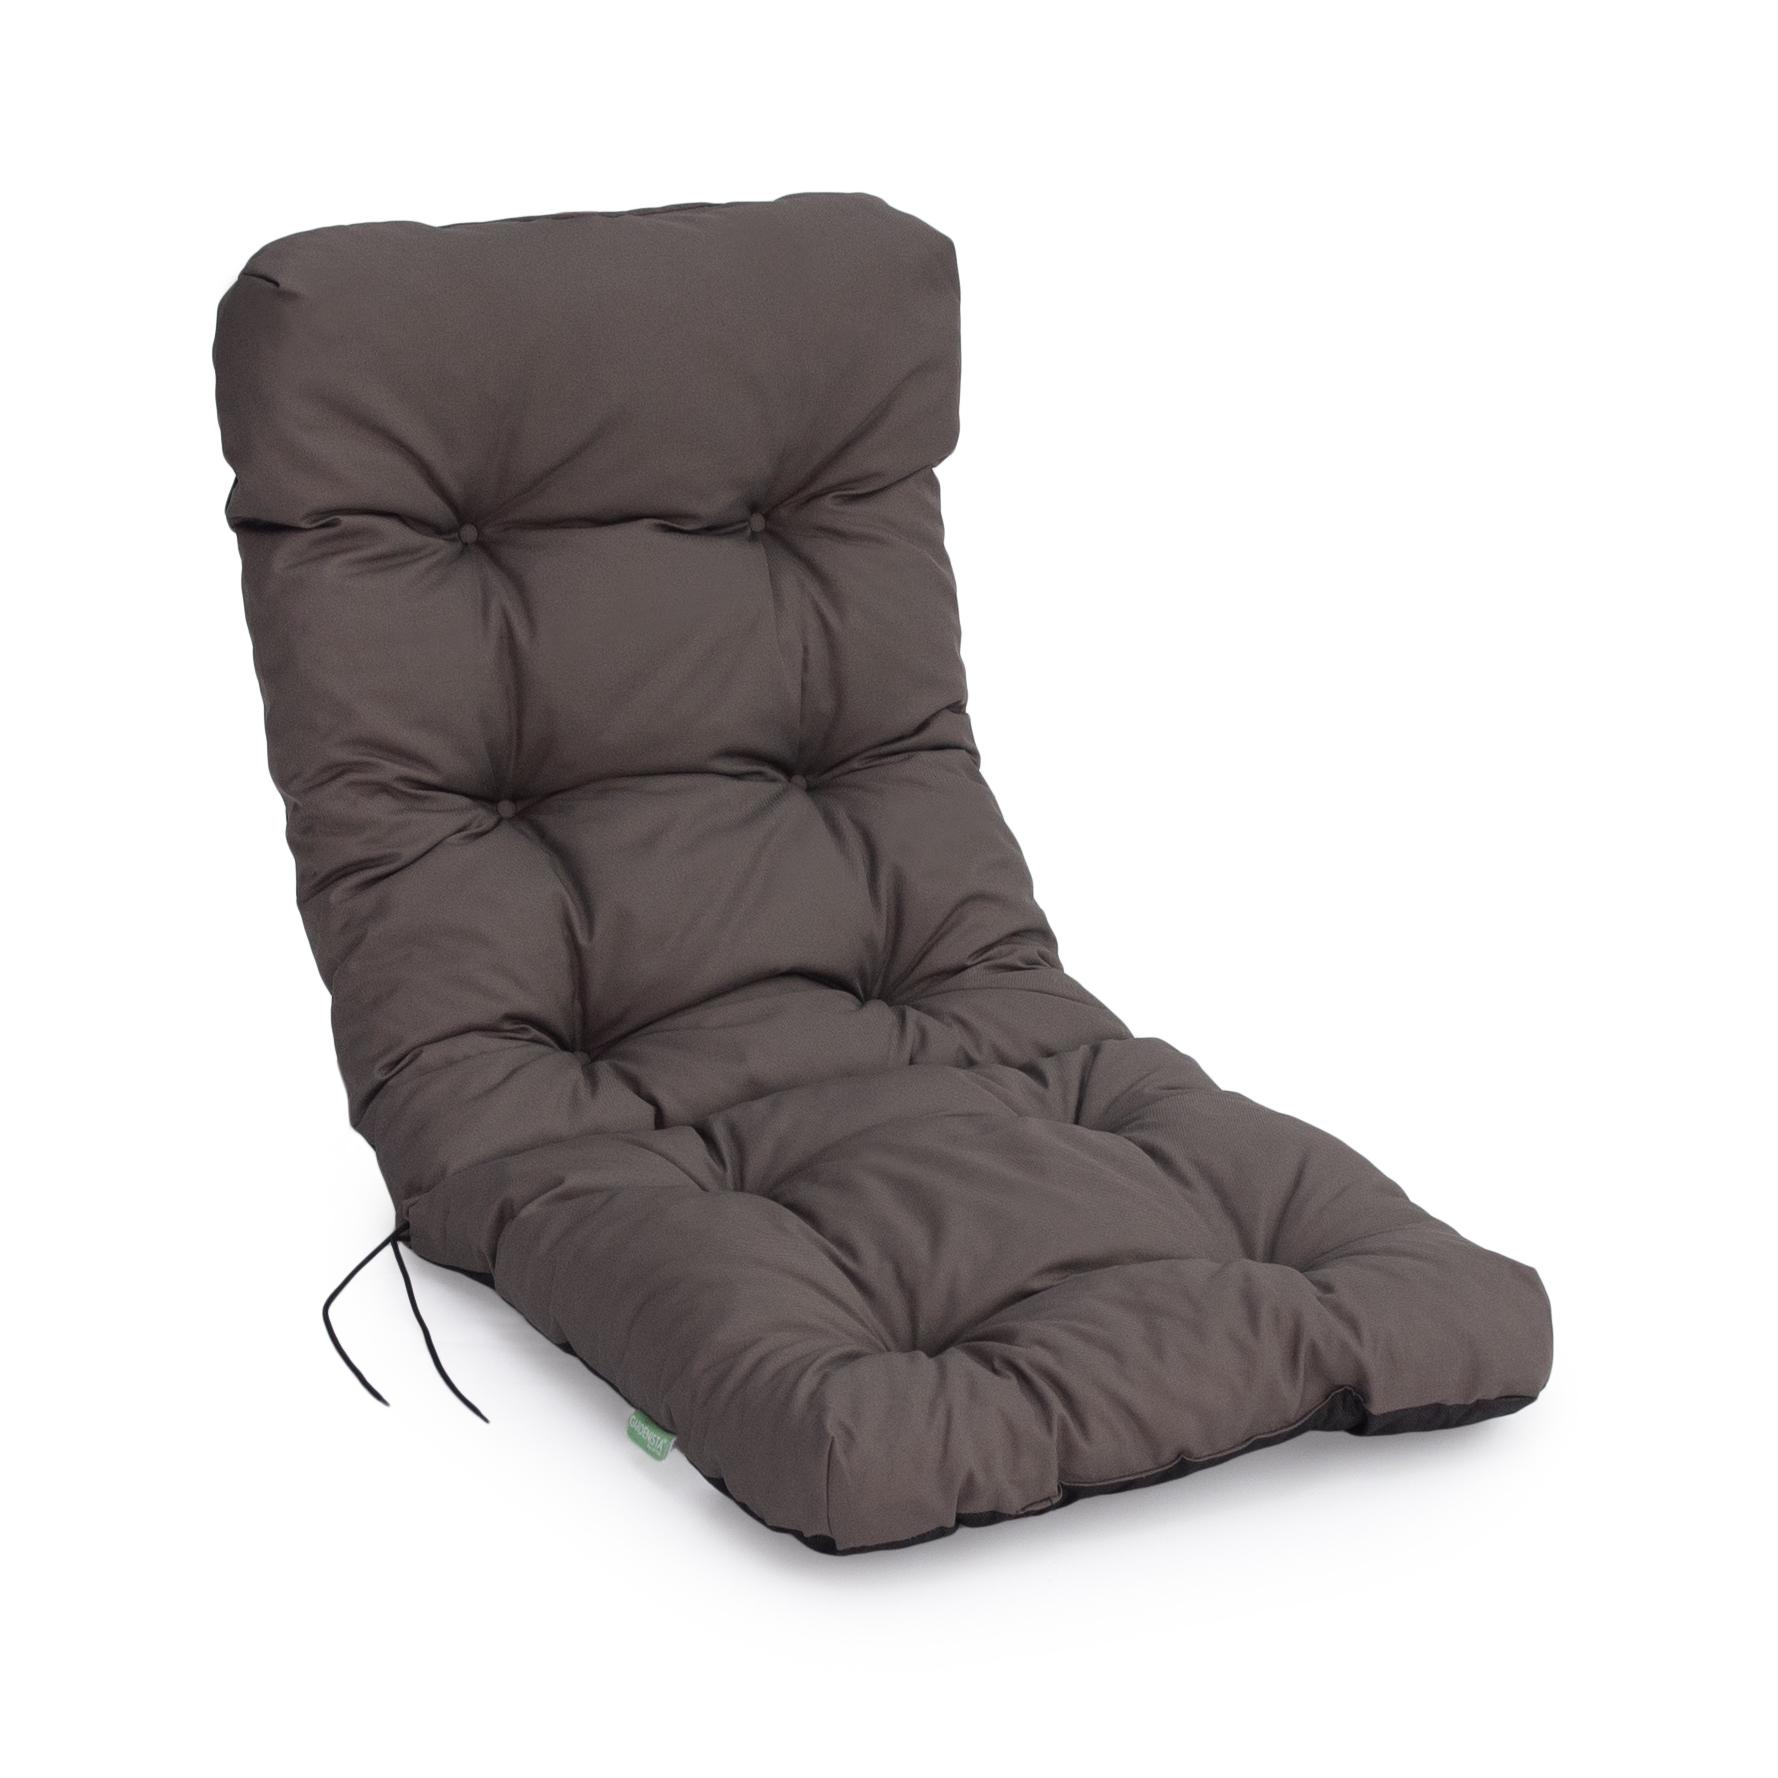 Image of: Grey Replacement High Back Dining Chair Cushion Thick Padded Garden Outdoor Ebay